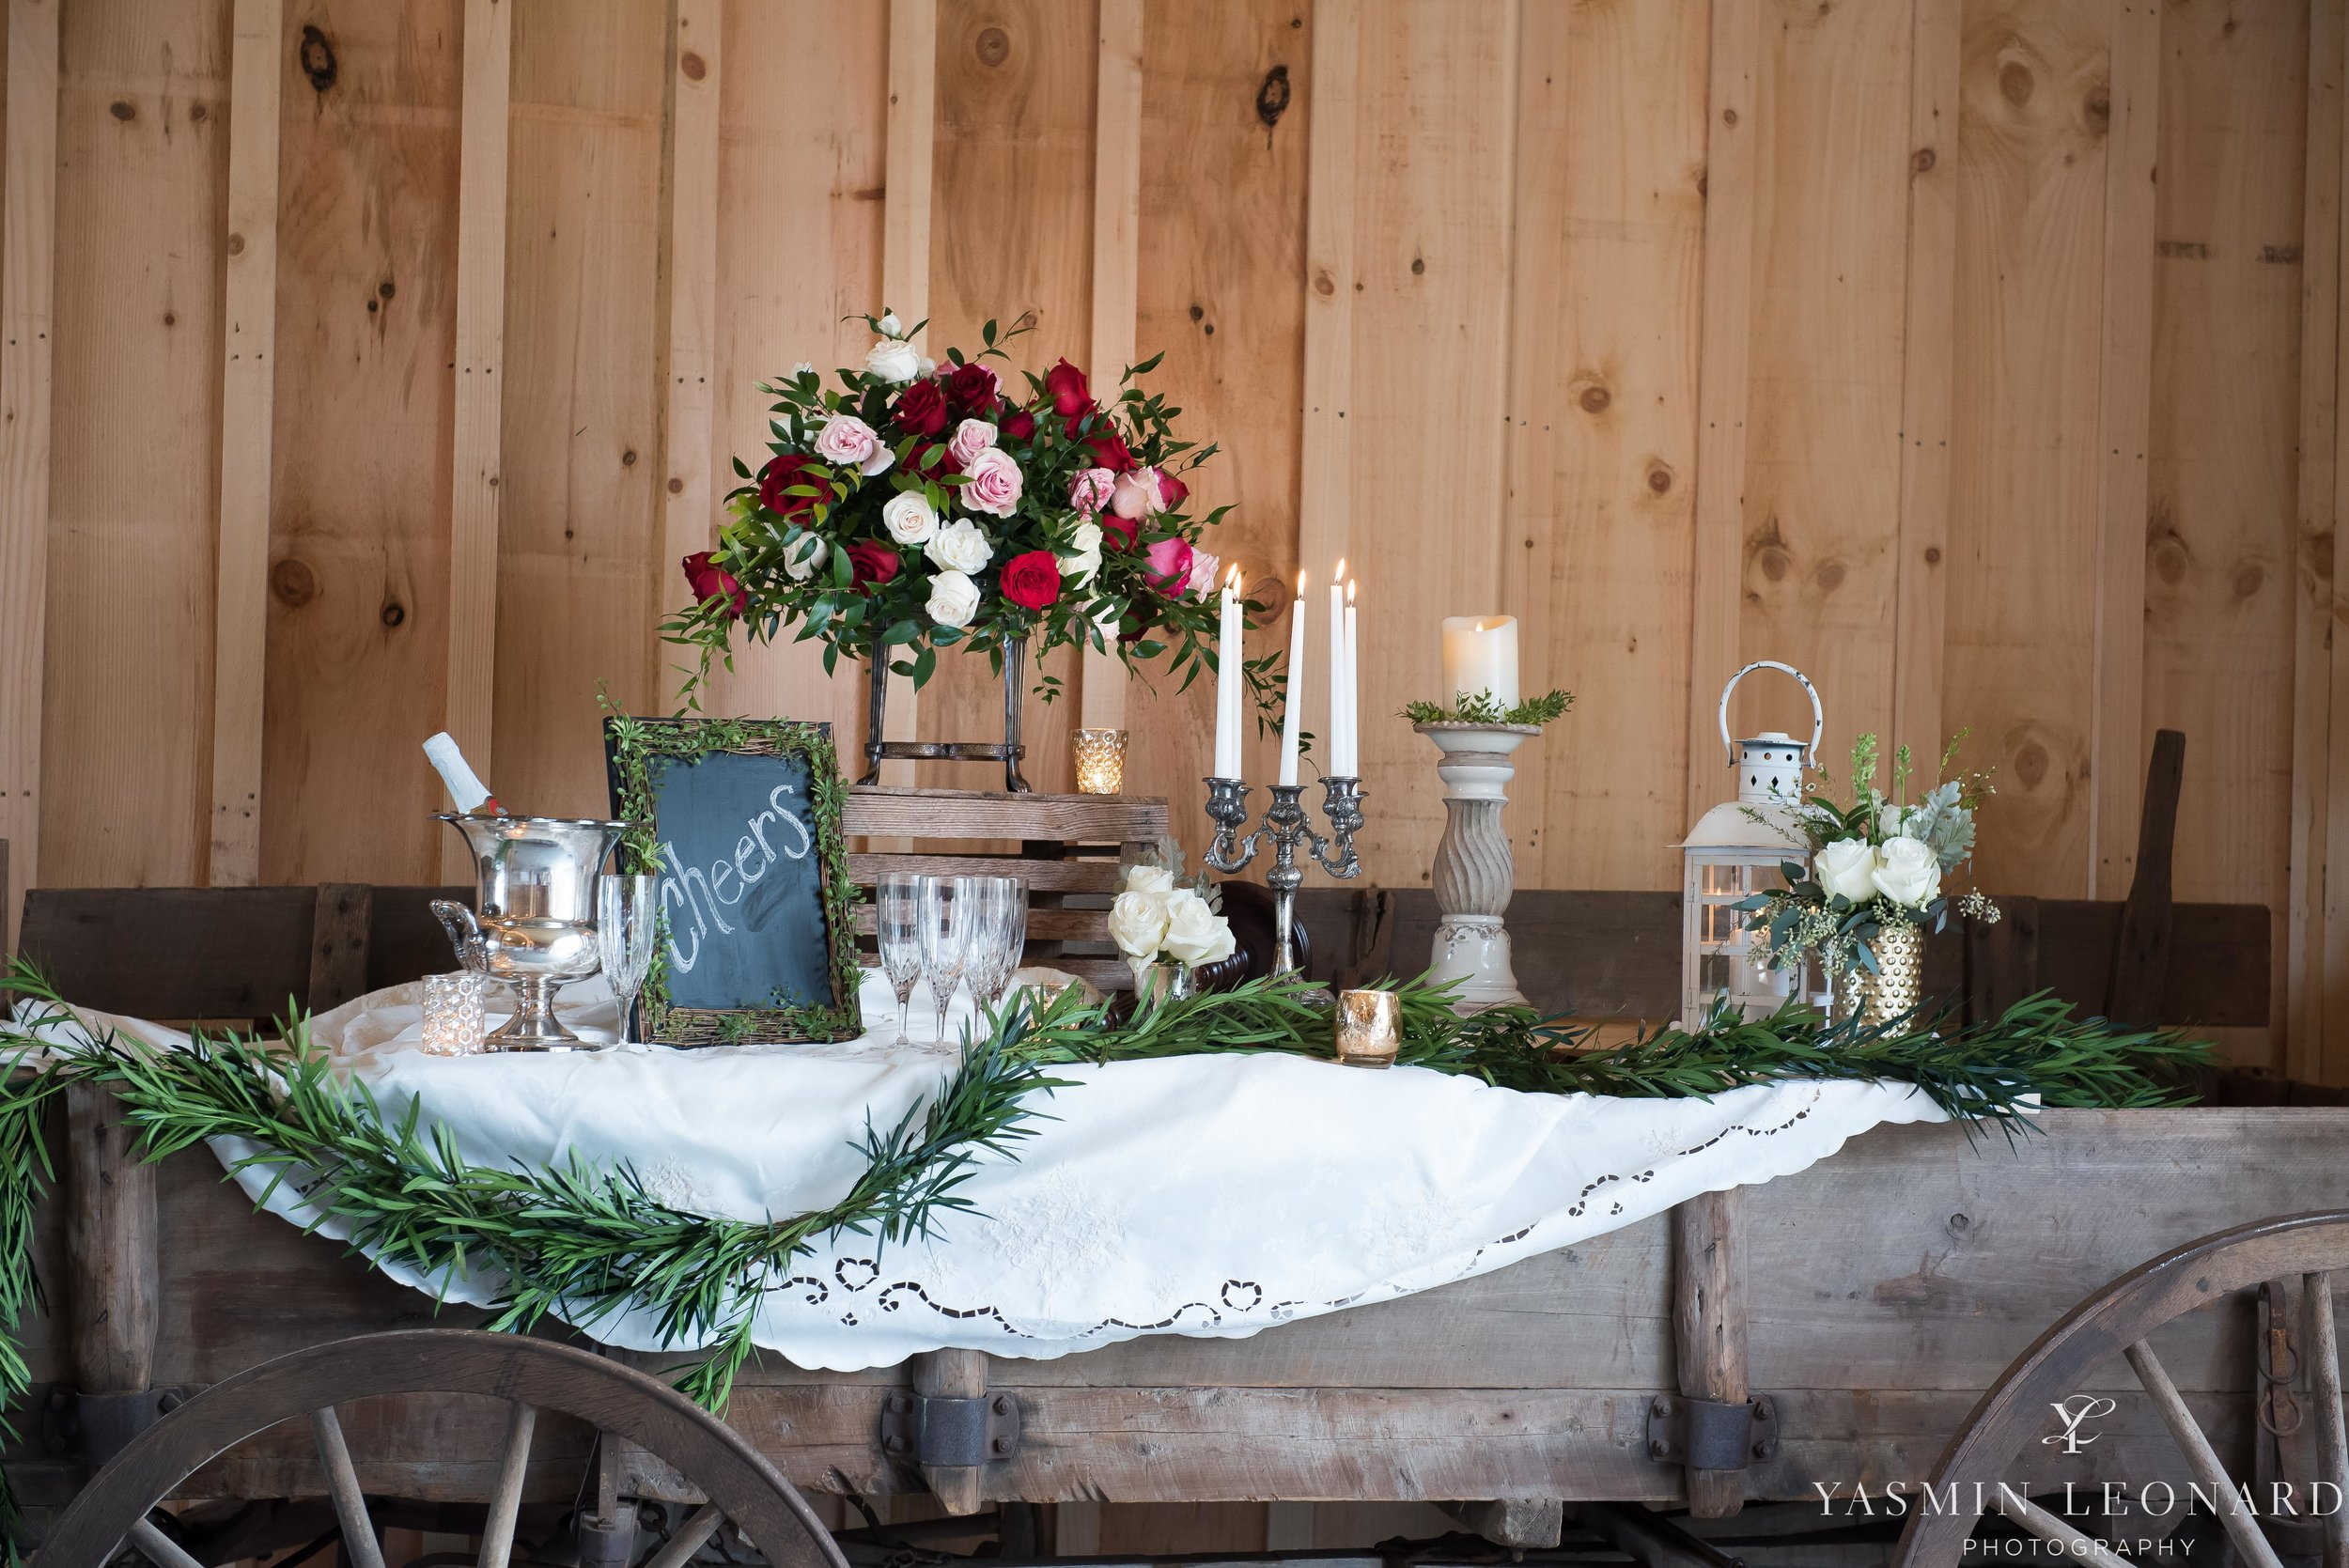 Old Homeplace Vineyard - Grits and Glitter - Dashing Dames Bridal Boutique - Just Priceless - Yasmin Leonard Photography - High Point Weddings - NC Weddings - NC Wedding Venues - High Point Jewelers - NC Wines - NC Vineyards - Cupcake Cuties-36.jpg